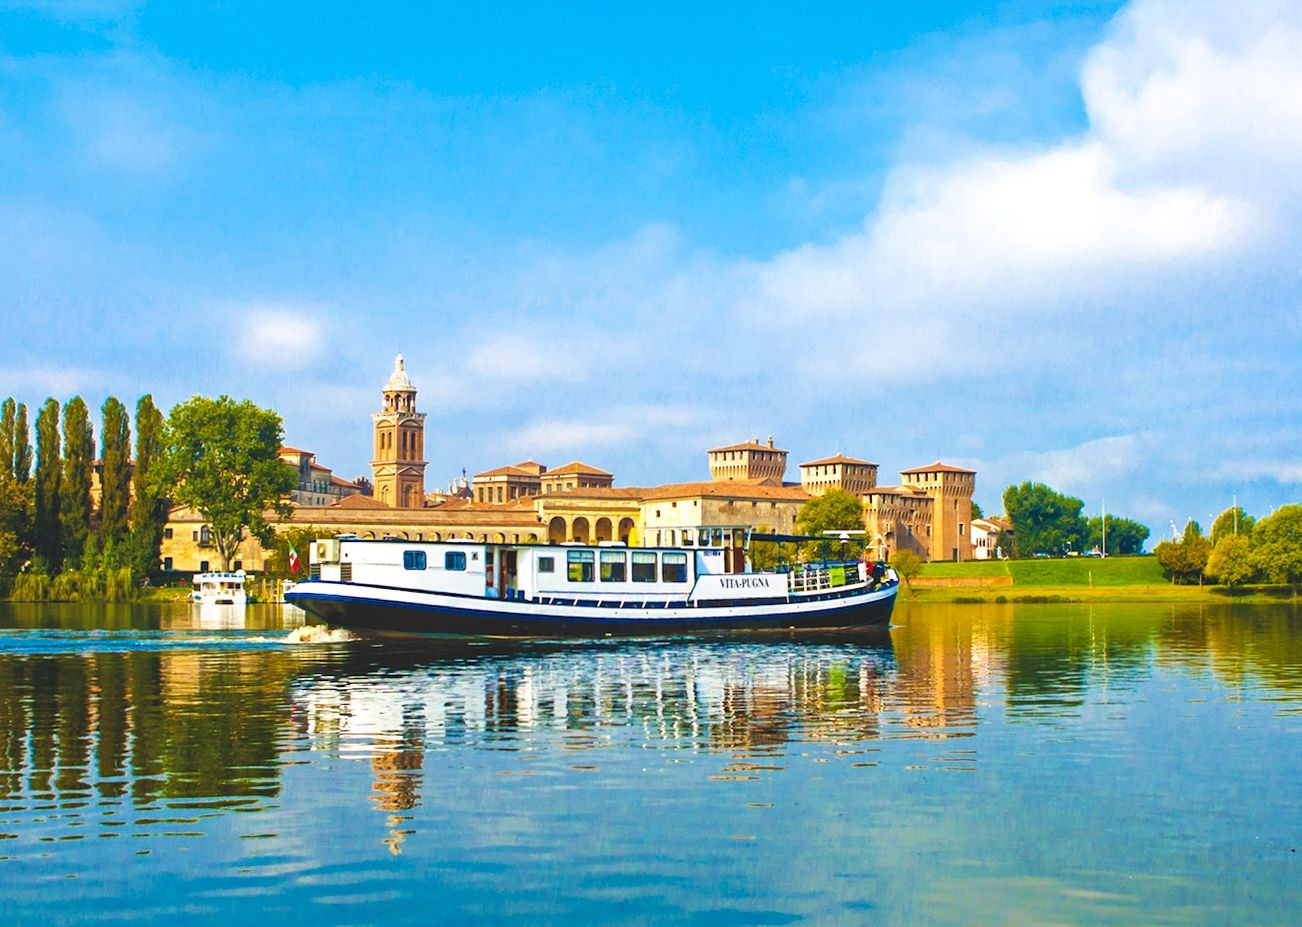 vita-pugna-cruise-boat-italy-mantova-cycling-tour-leisure-fun.jpg - Italy - Venetian Waterways (Venice to Mantova) - Bike and Barge Holiday - Leisure Cycling